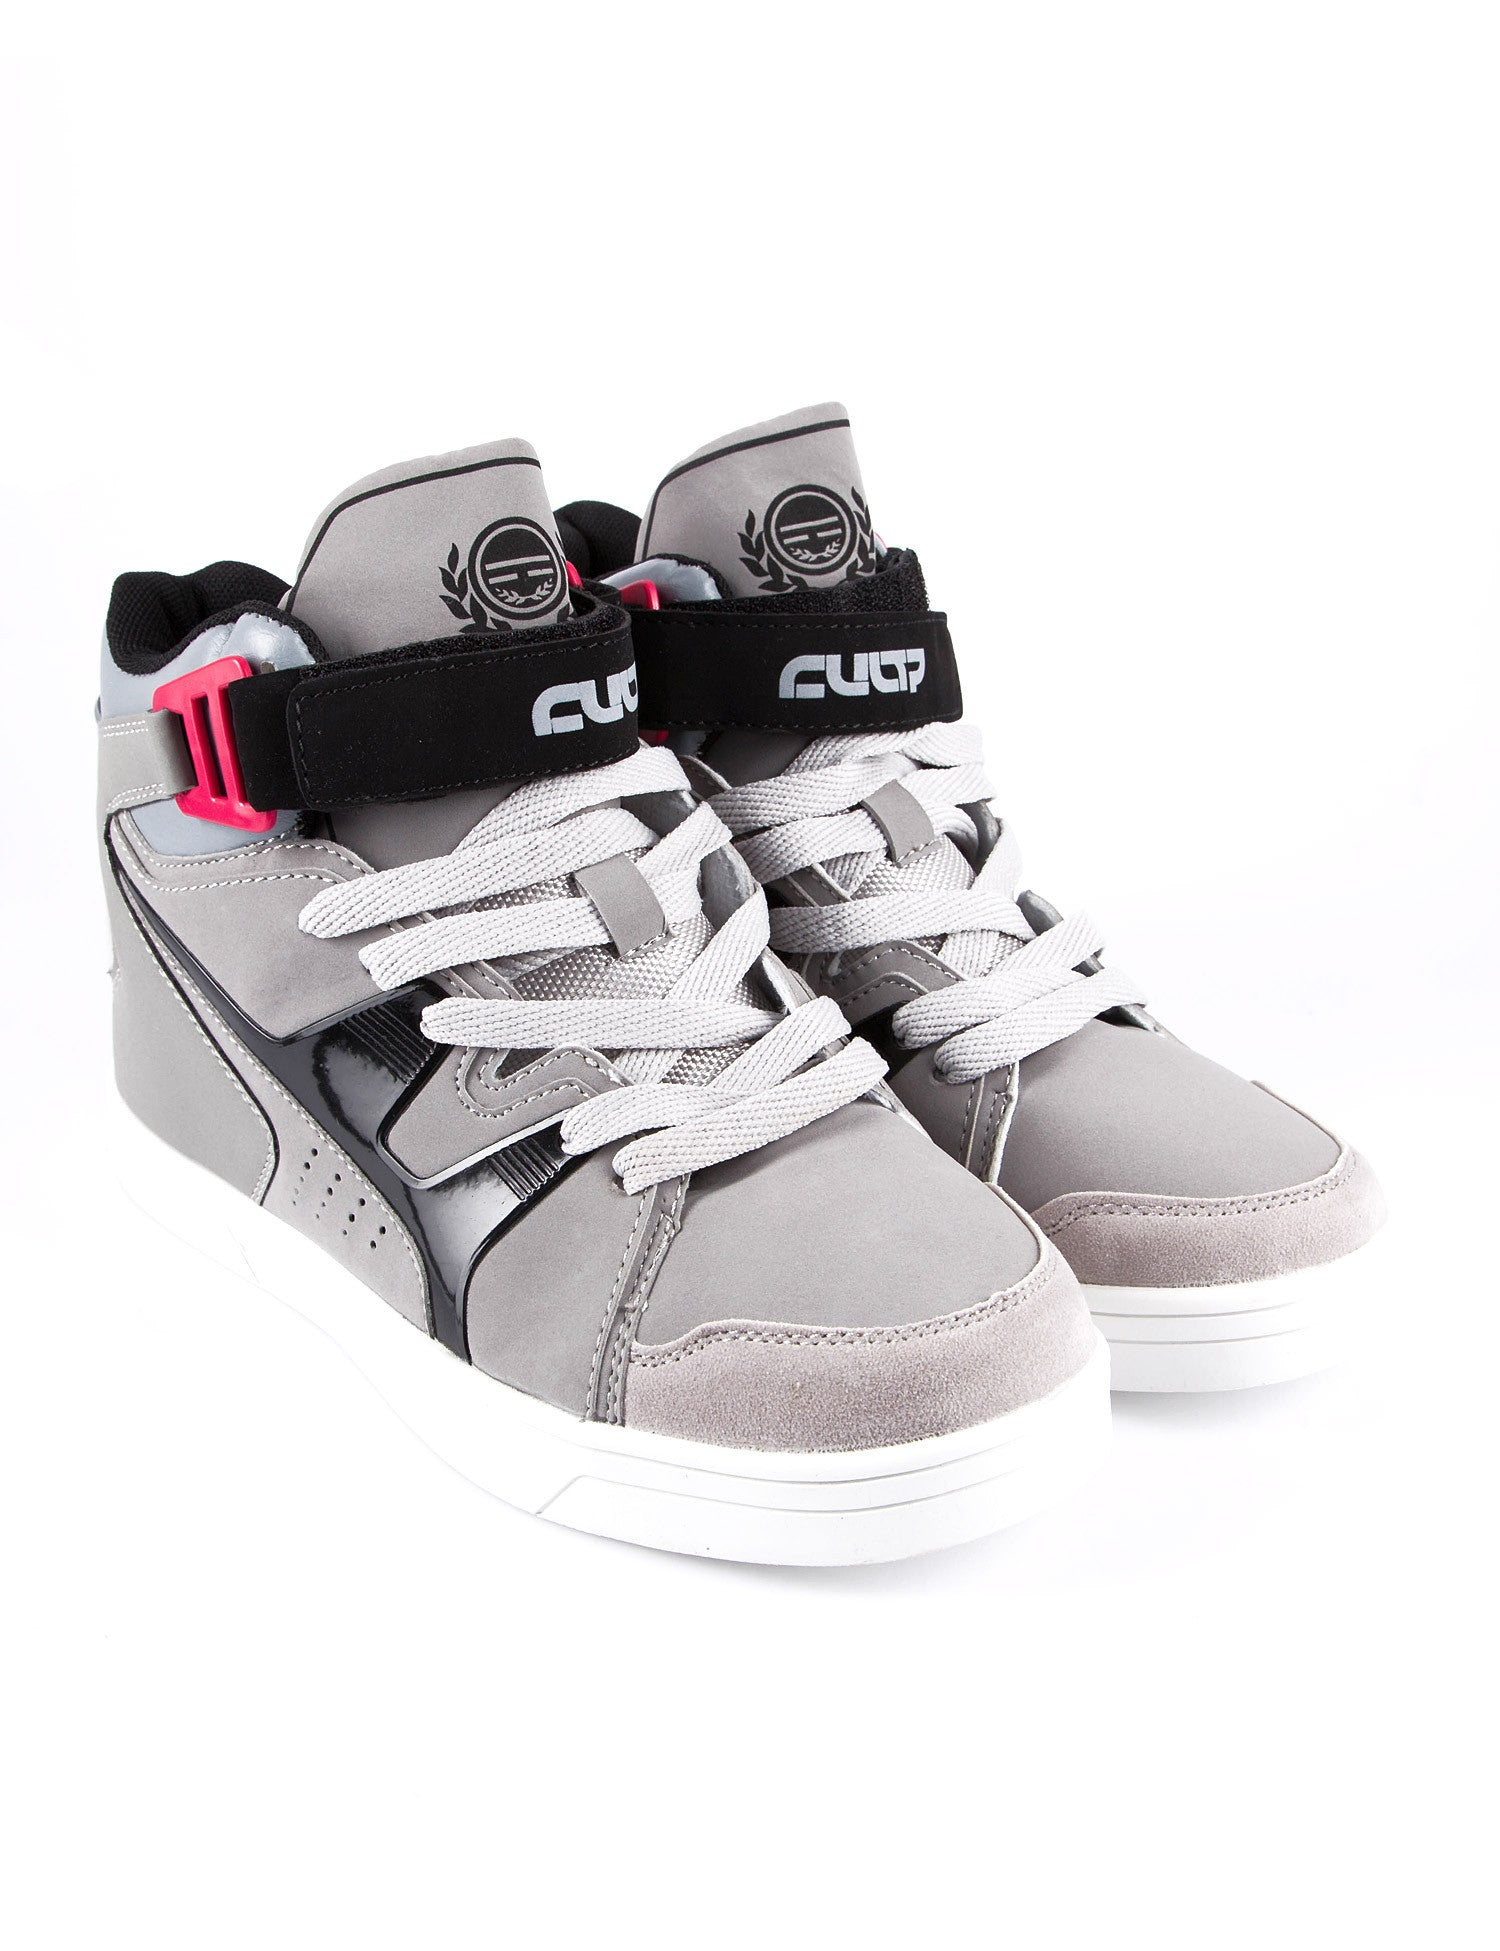 Image of 9-6360 Shoes  Grey